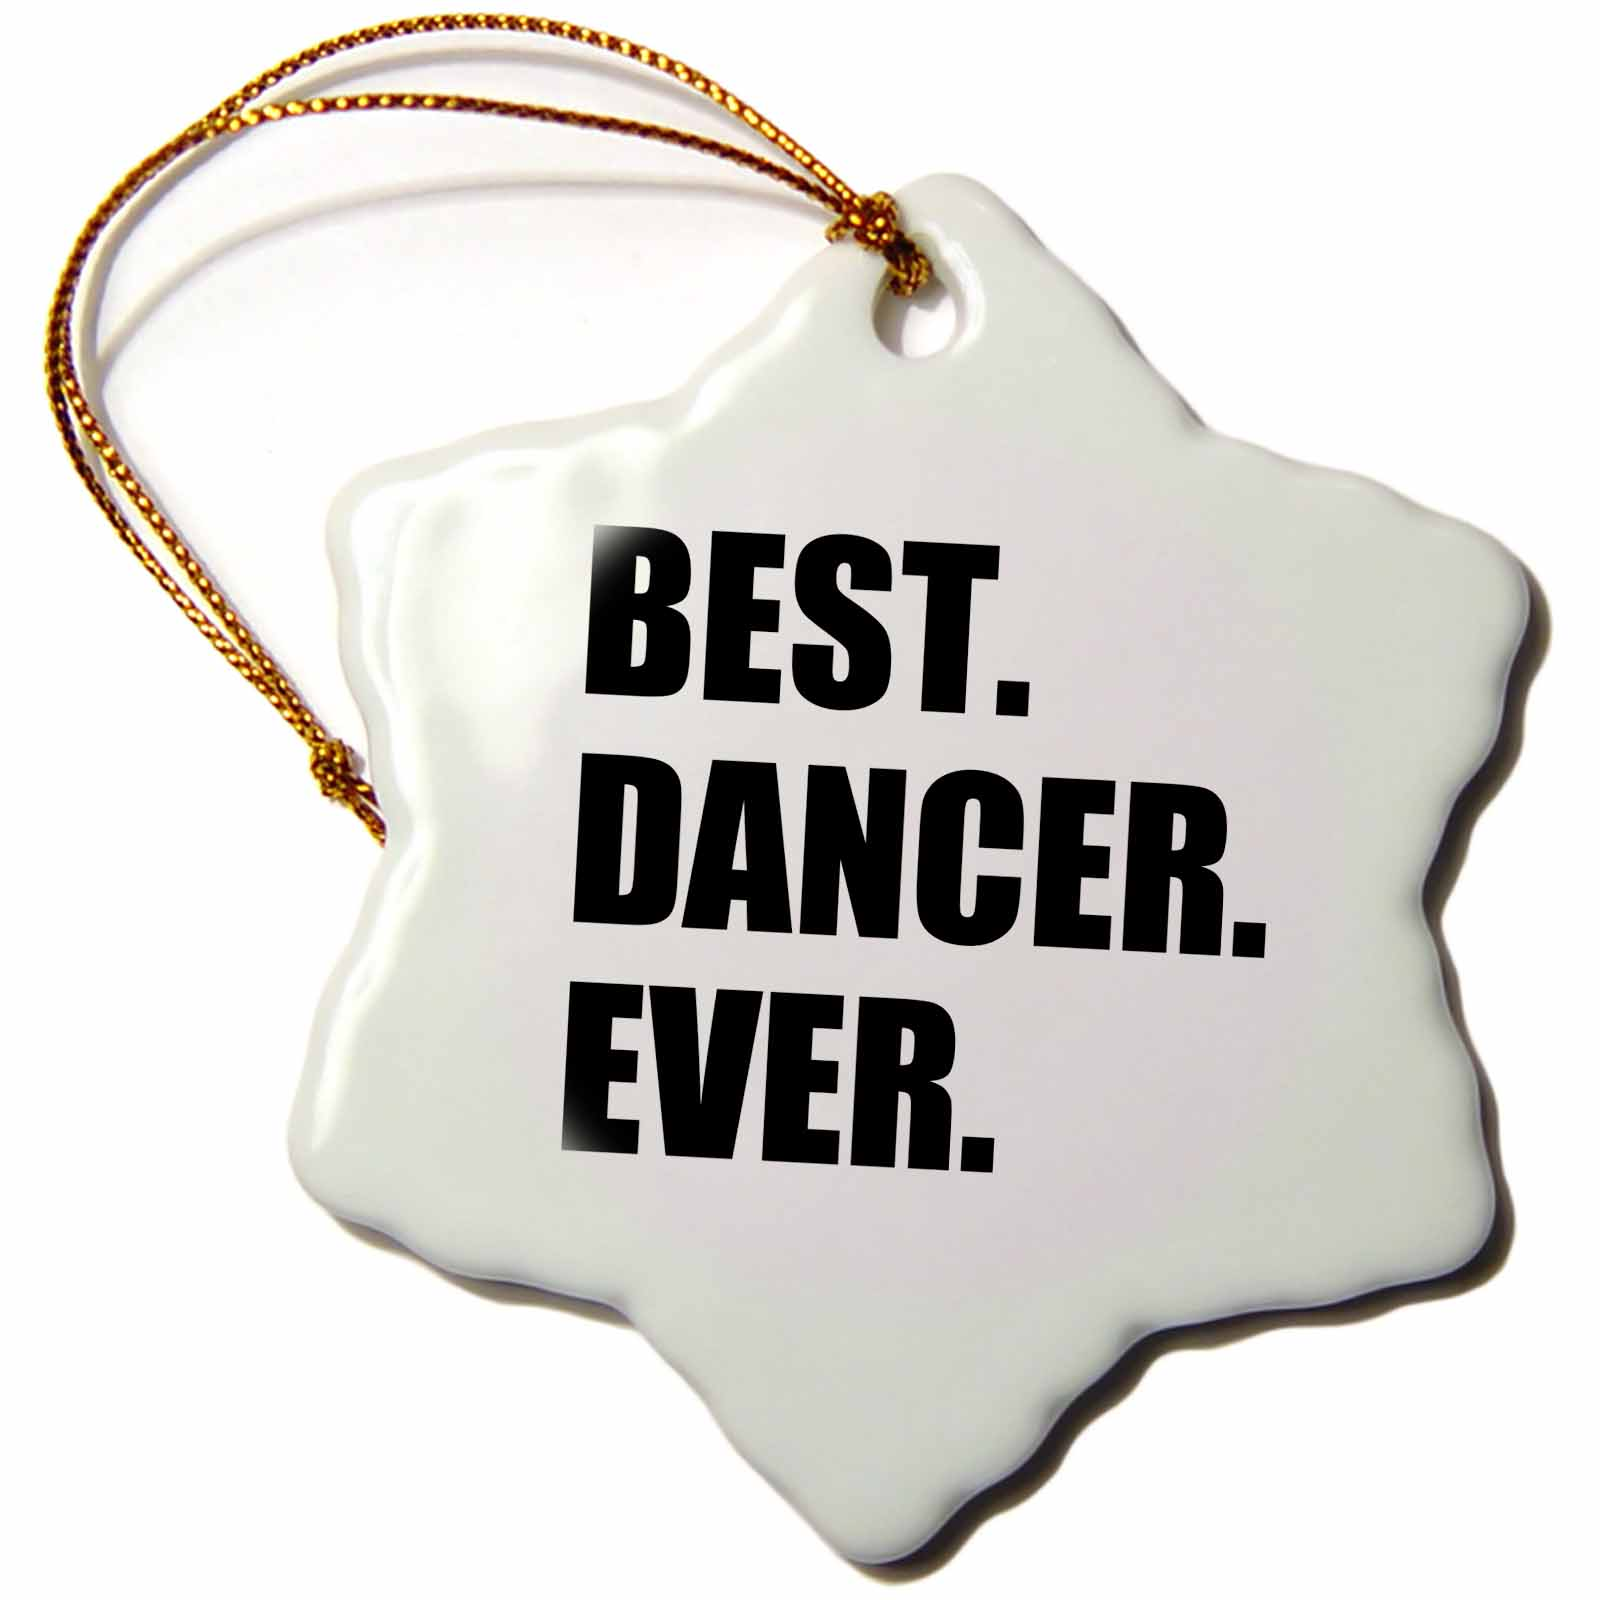 3dRose Best Dancer Ever - fun text gifts for fans of dance - dancing teachers, Snowflake Ornament, Porcelain, 3-inch